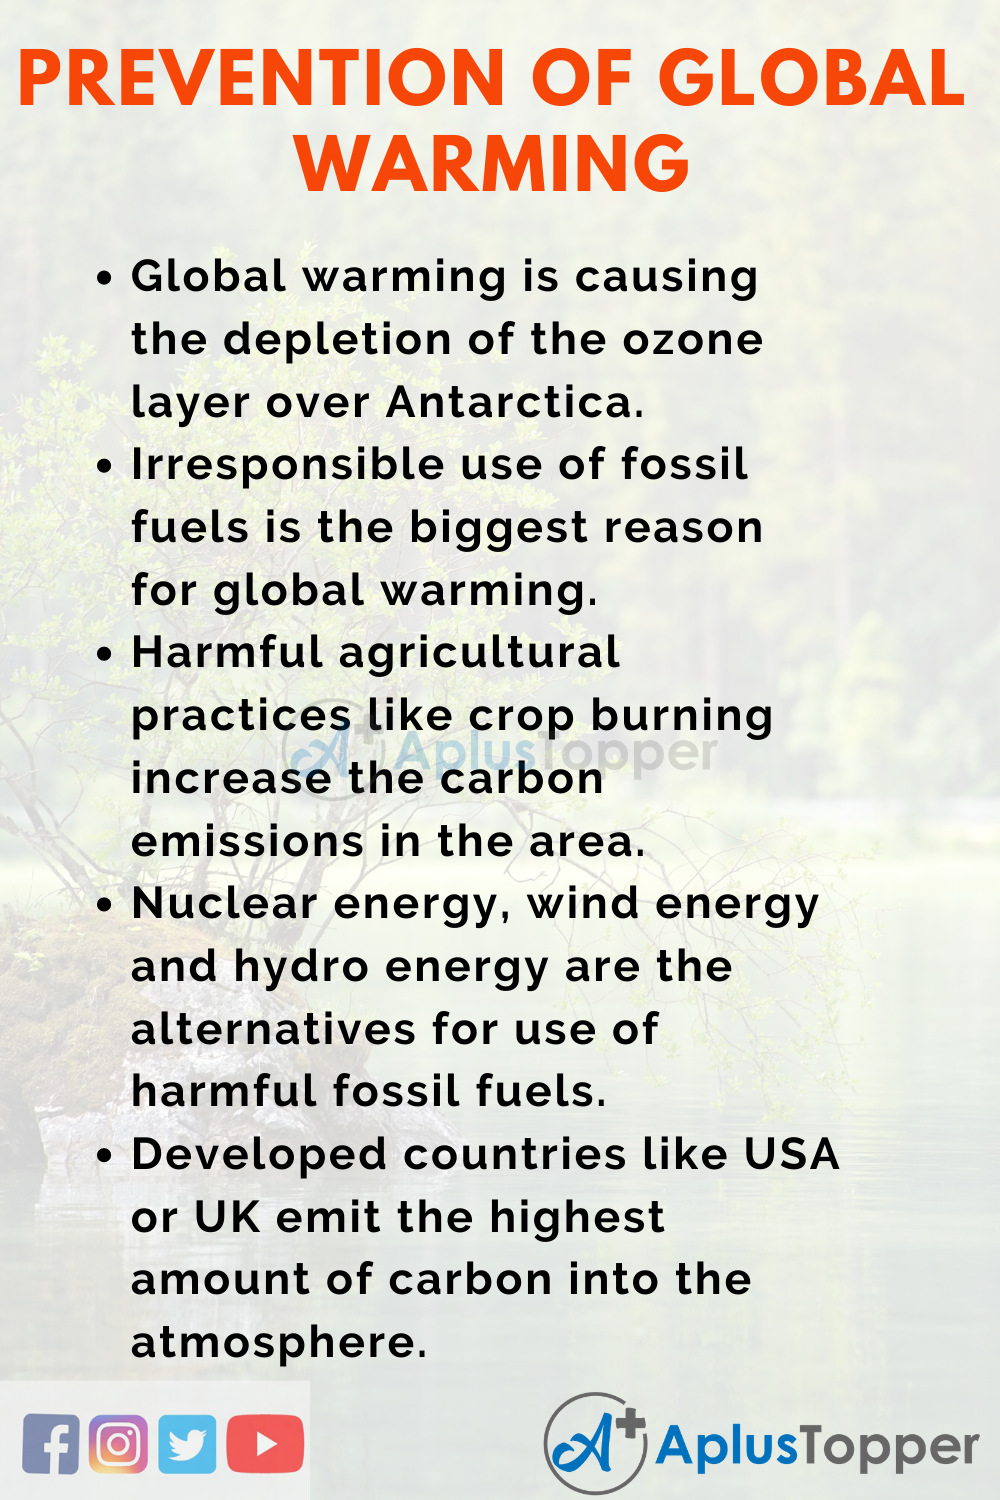 Essay about Prevention of Global Warming